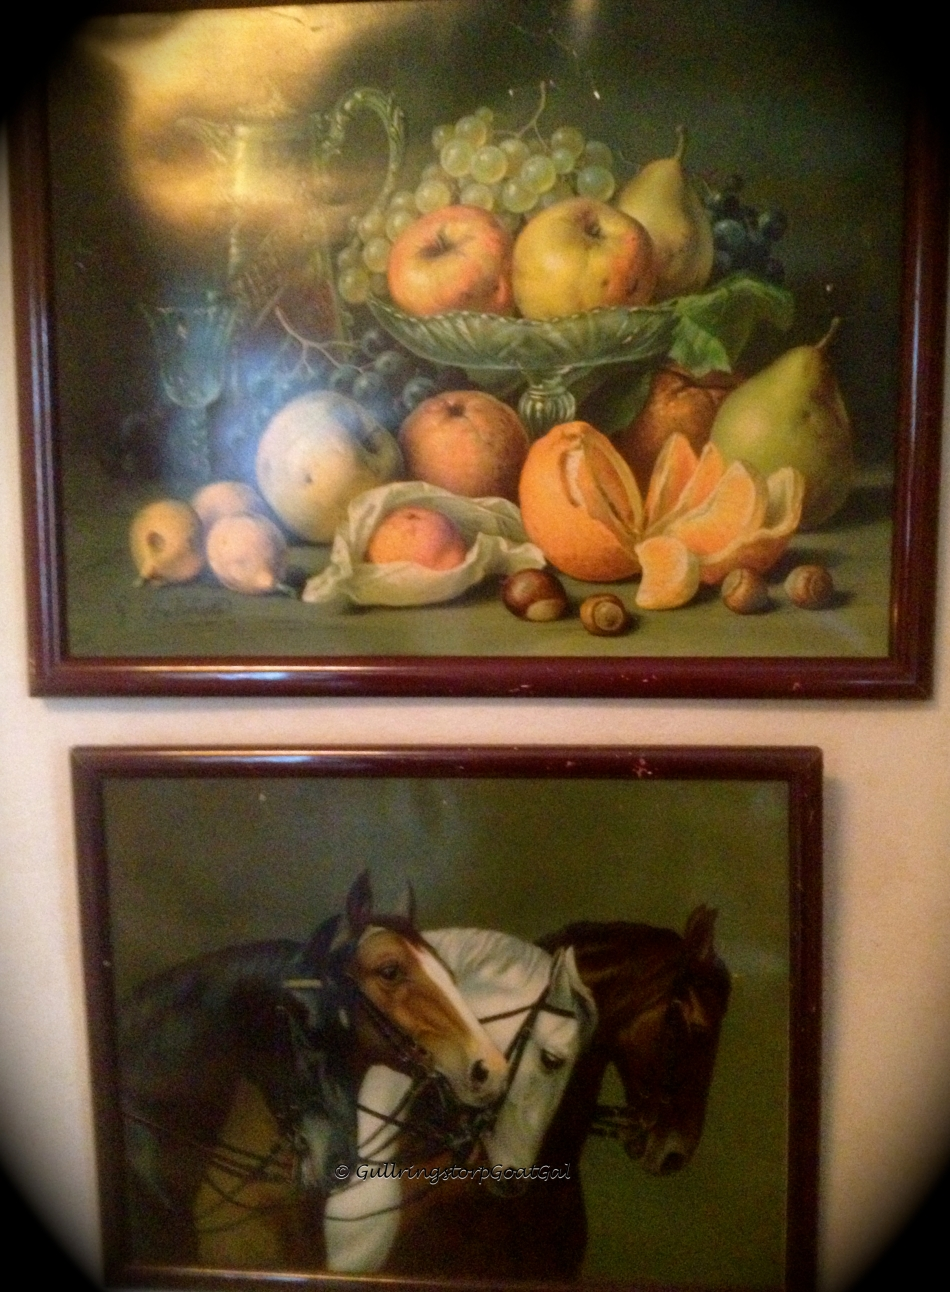 Two very old beautiful paintings were hung in the buffet room